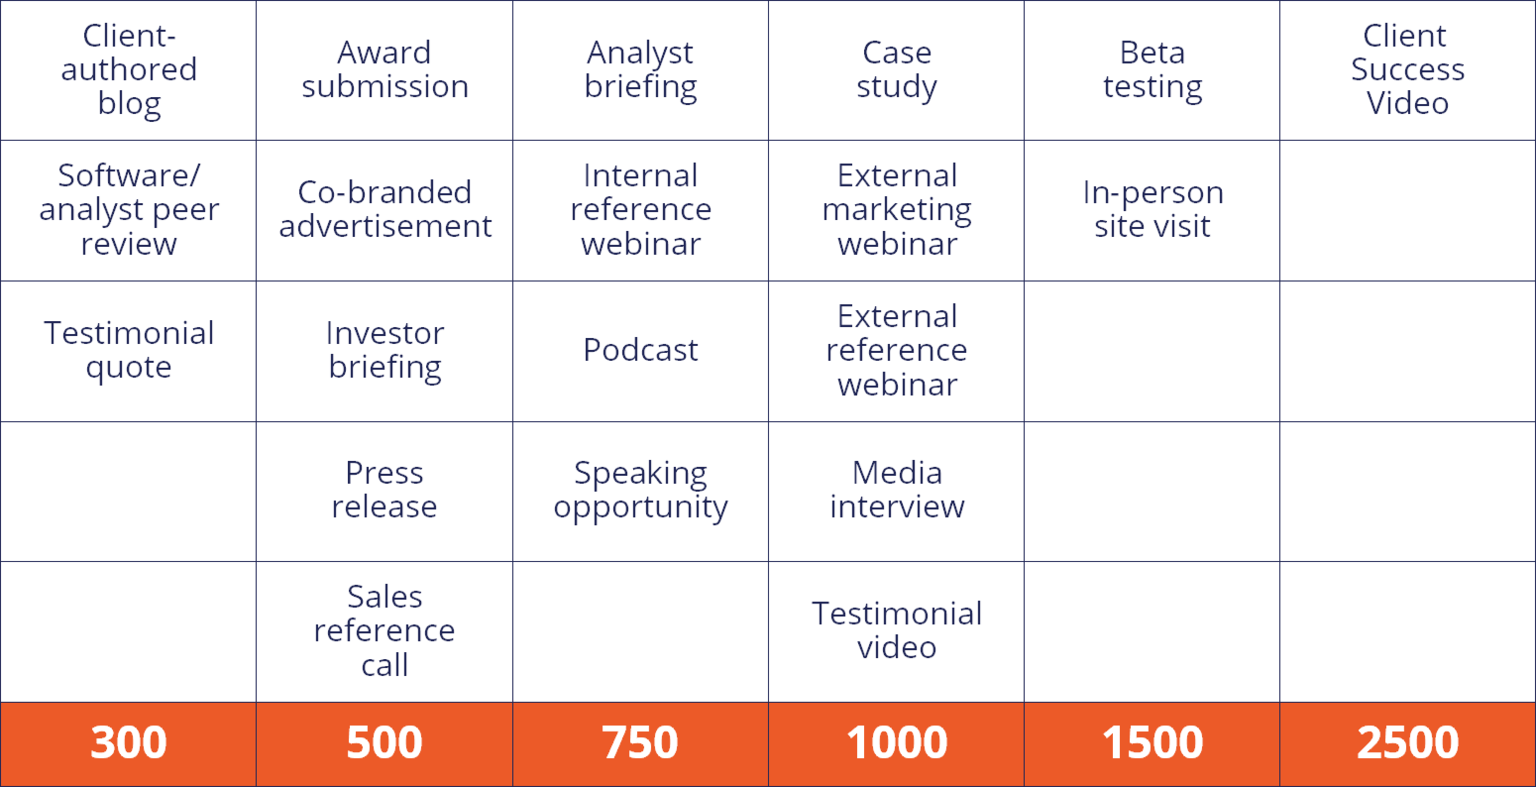 Table outlining Pega Point values by activity (available on the program brochure as well).